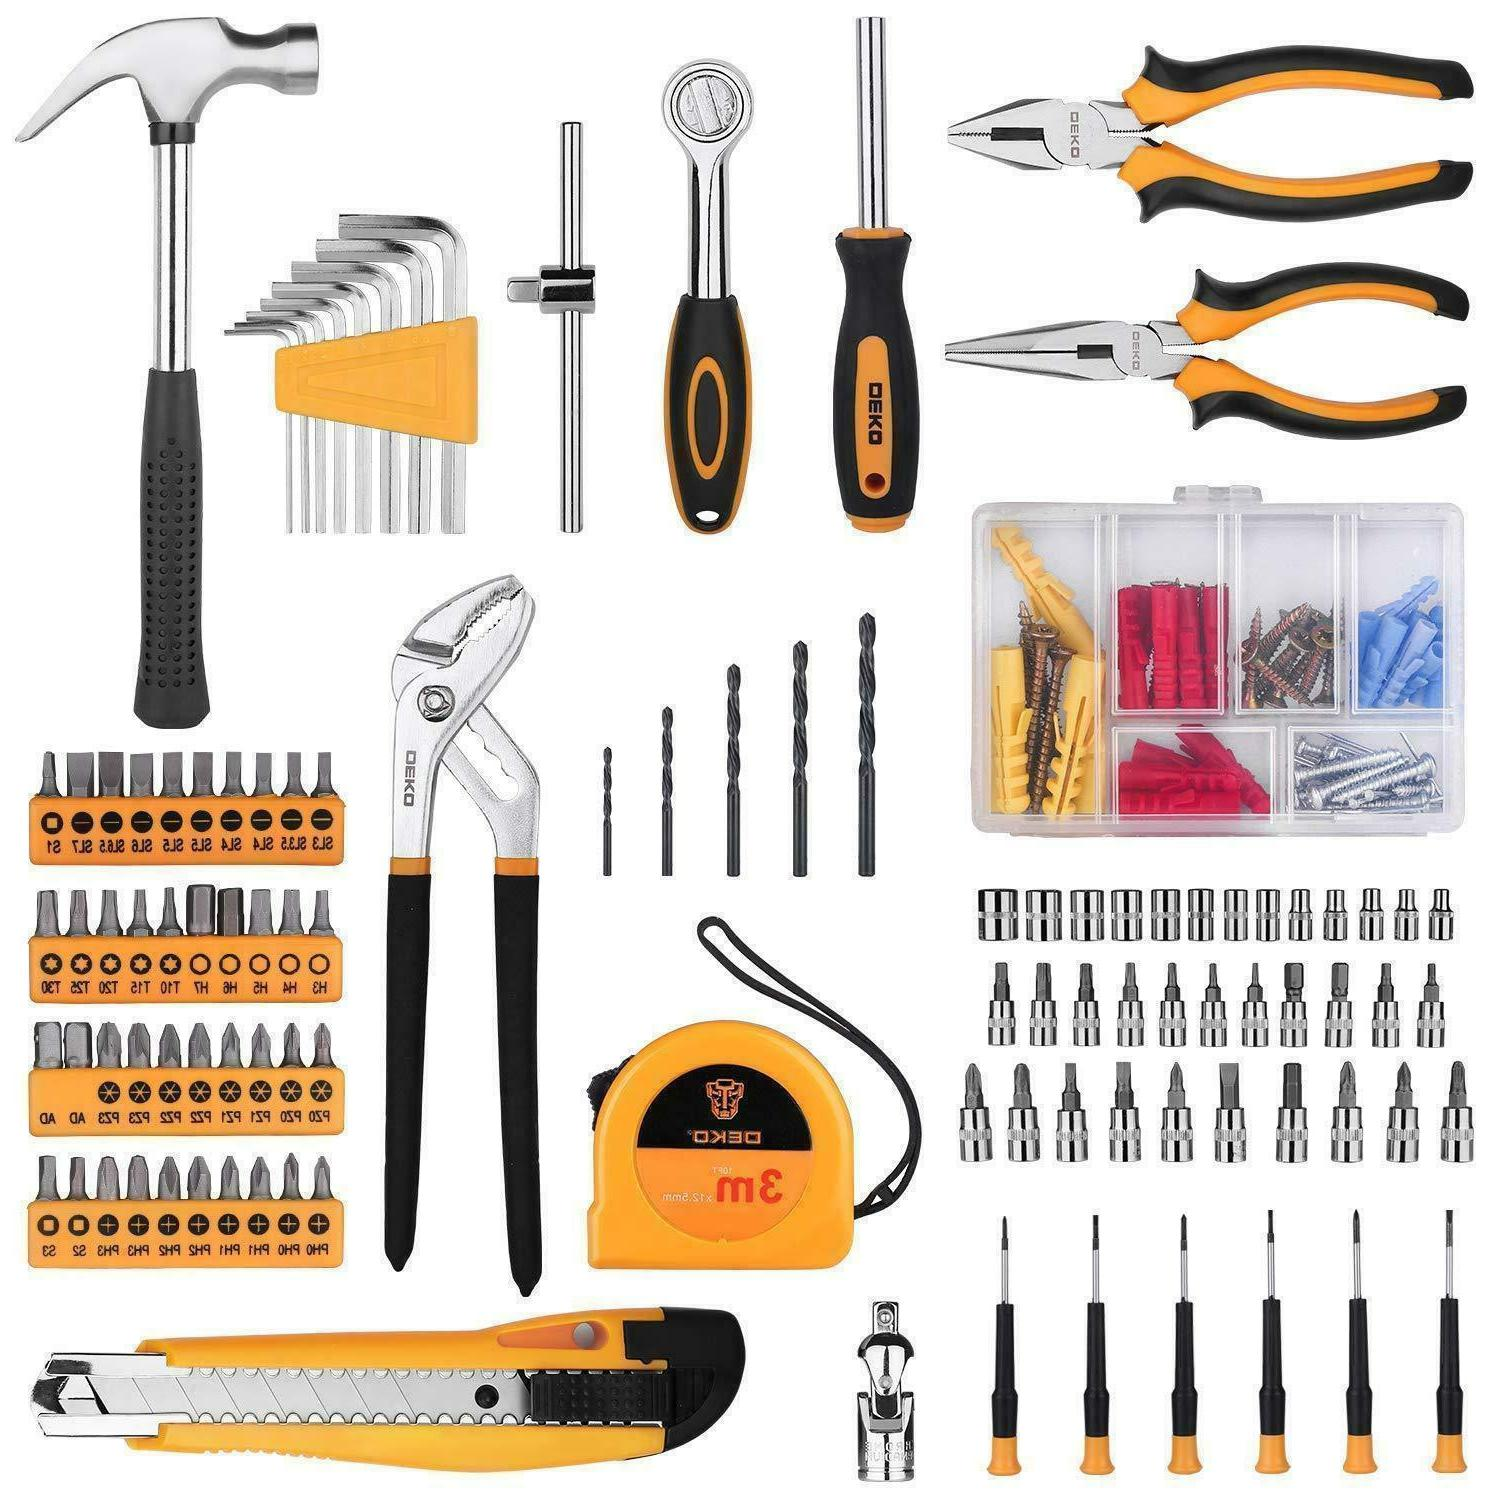 DEKO 196 Set Tool Kit Claw